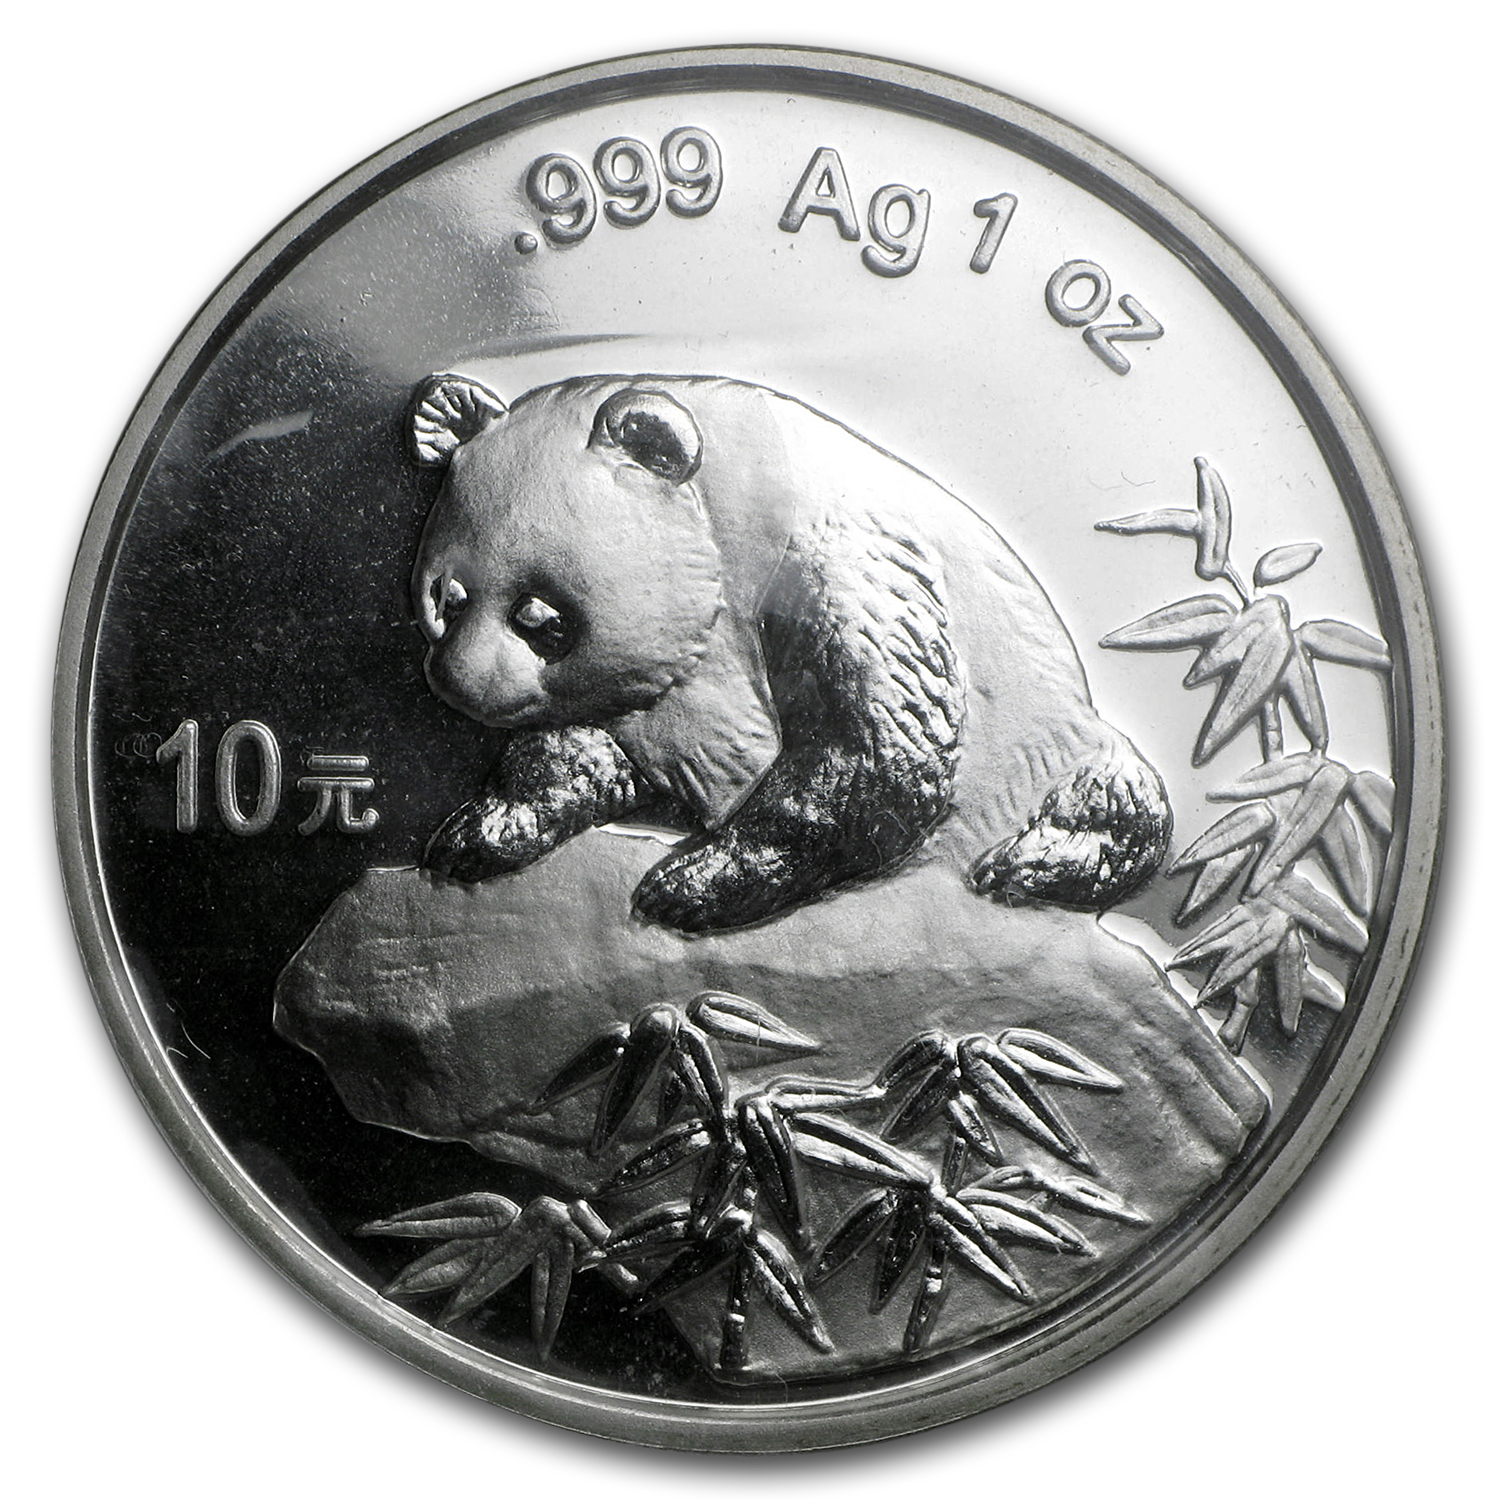 1999 China 1 oz Silver Panda Small Date BU (Sealed)